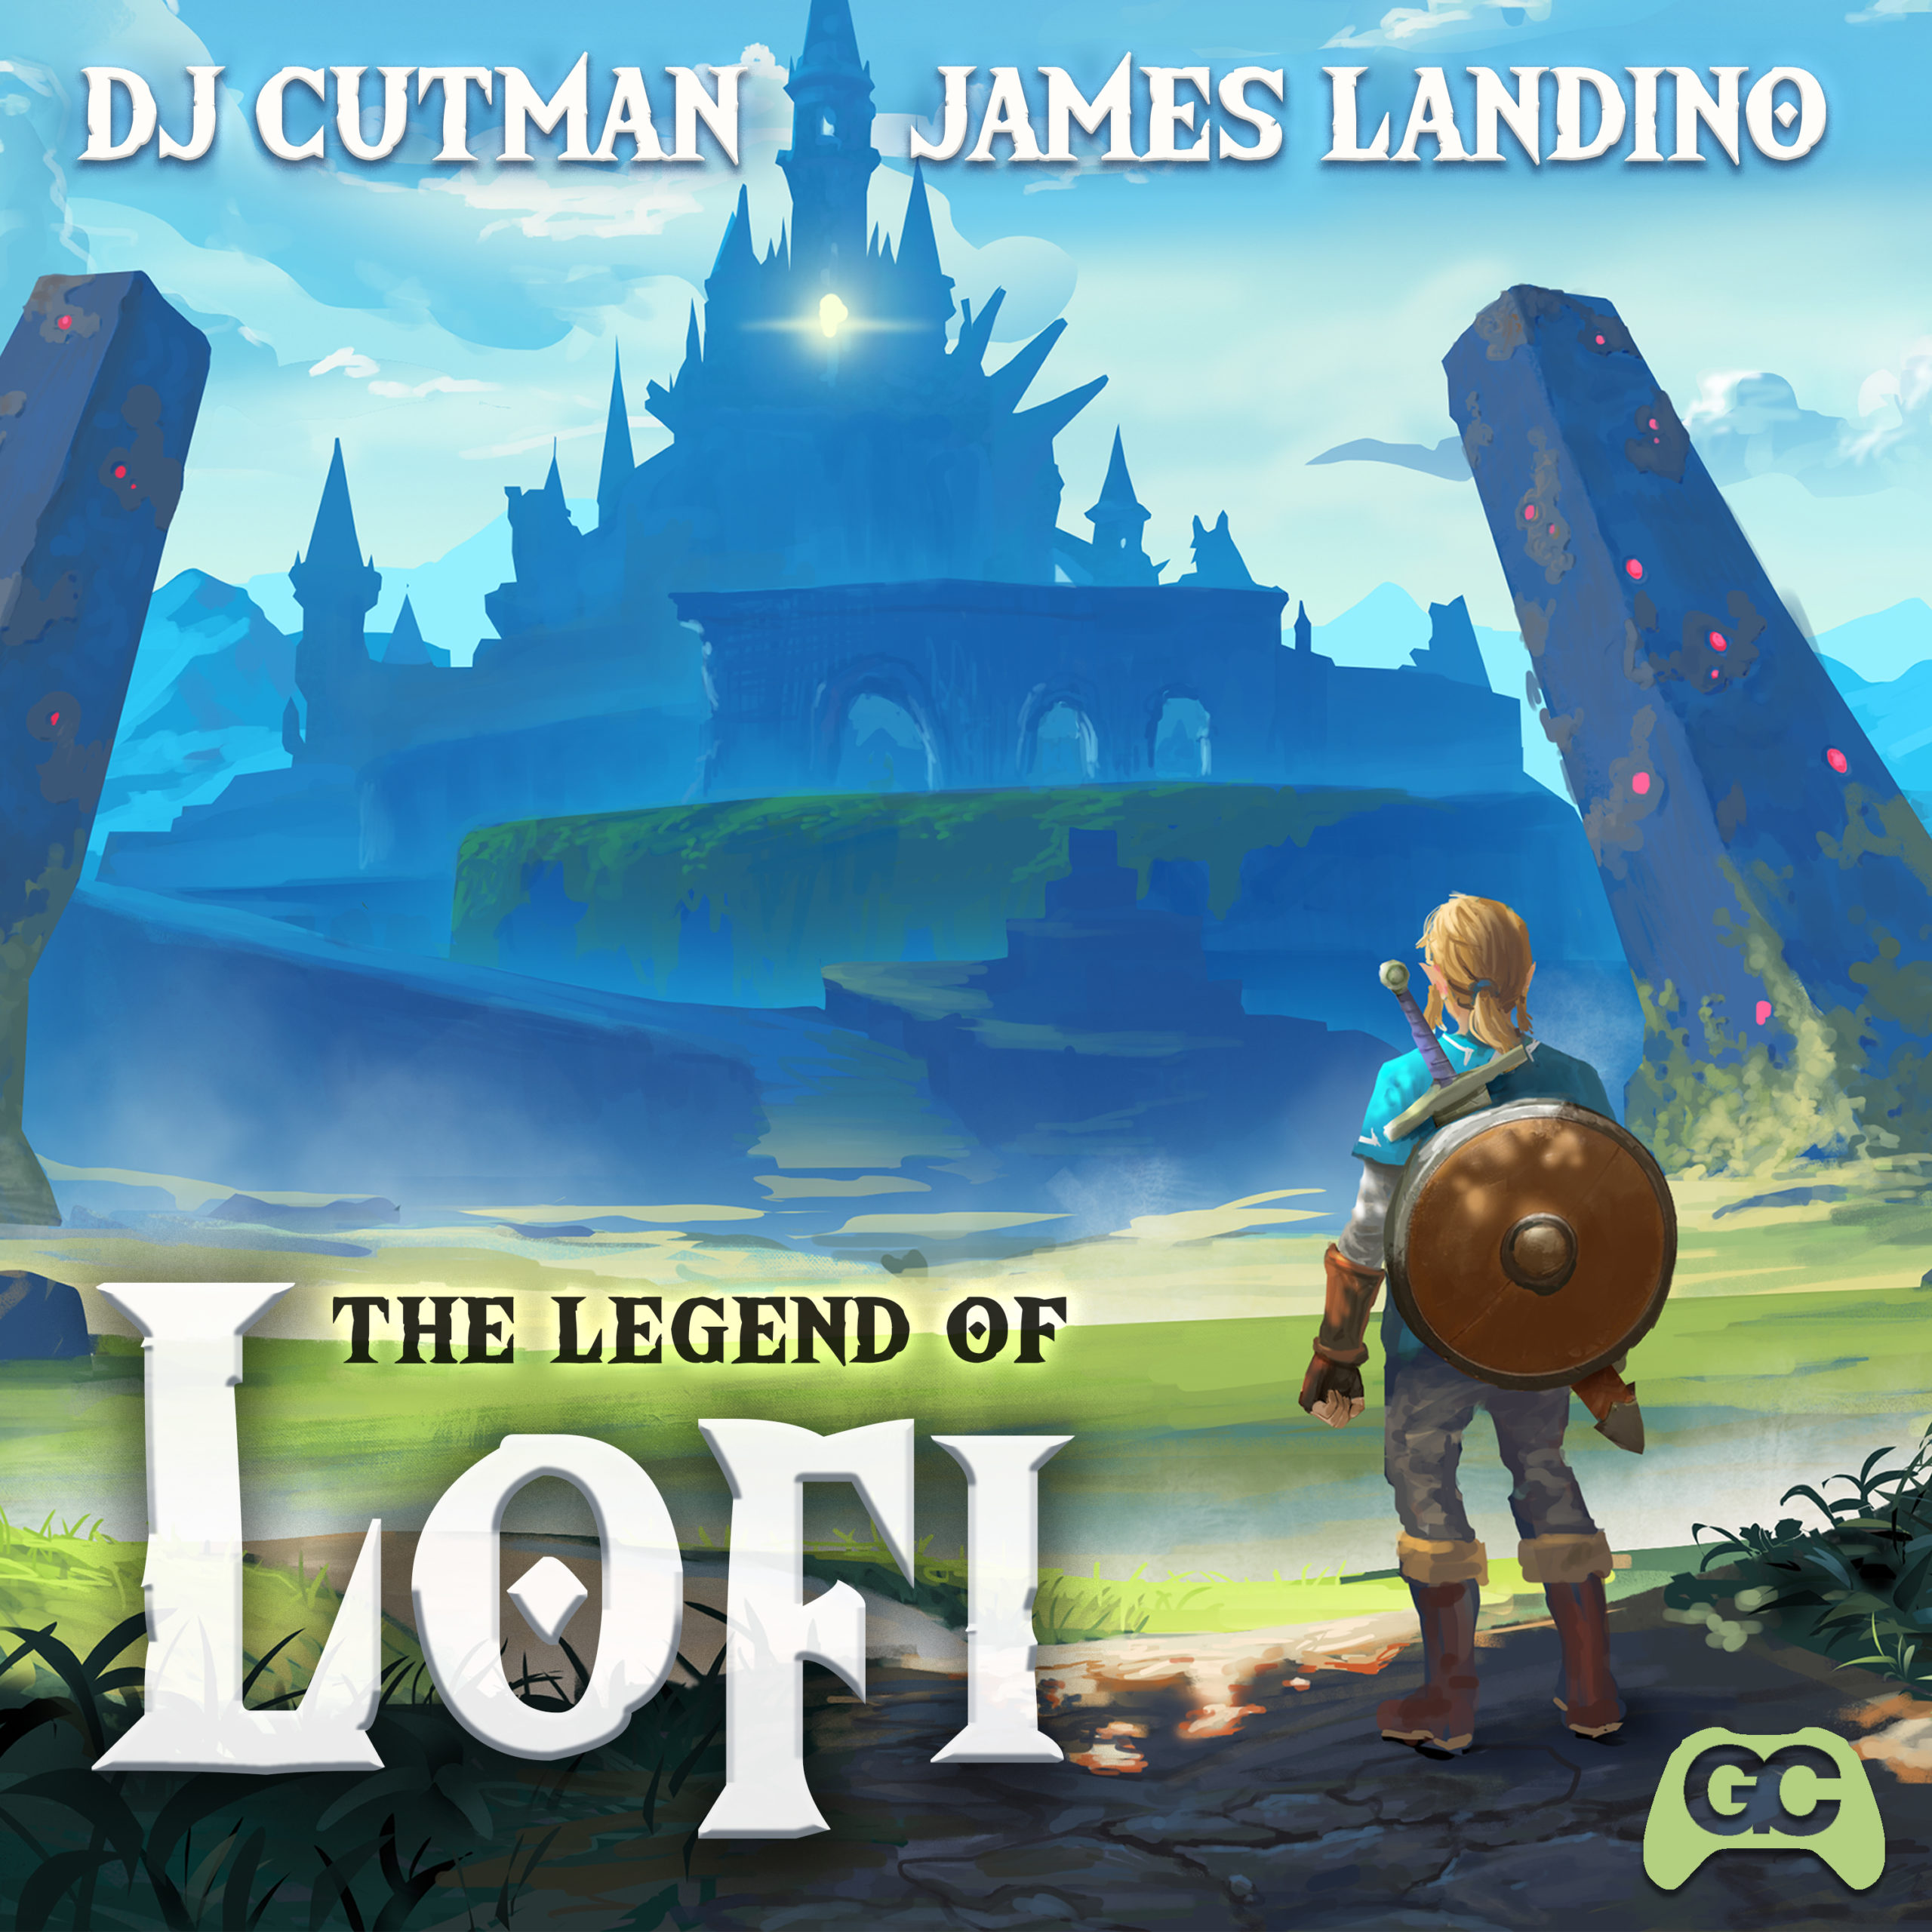 Dj Cutman James Landino The Legend Of Lofi Gamechops